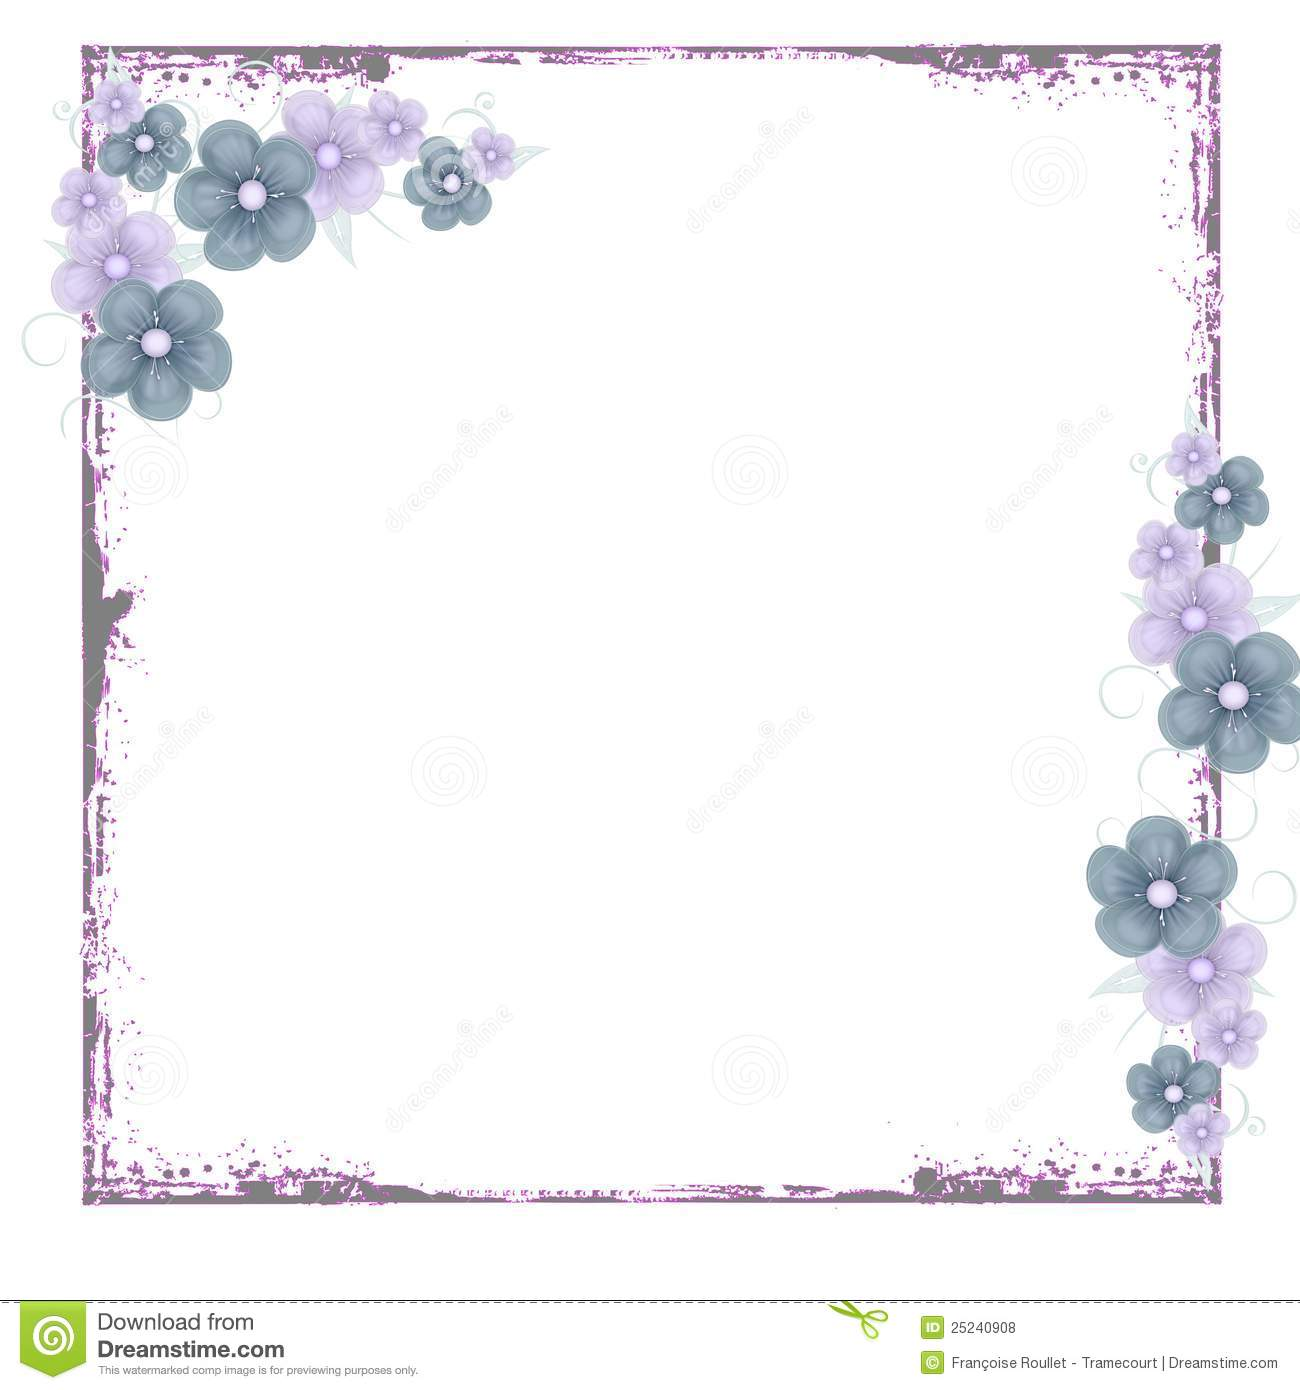 mauve and grey wallpaper